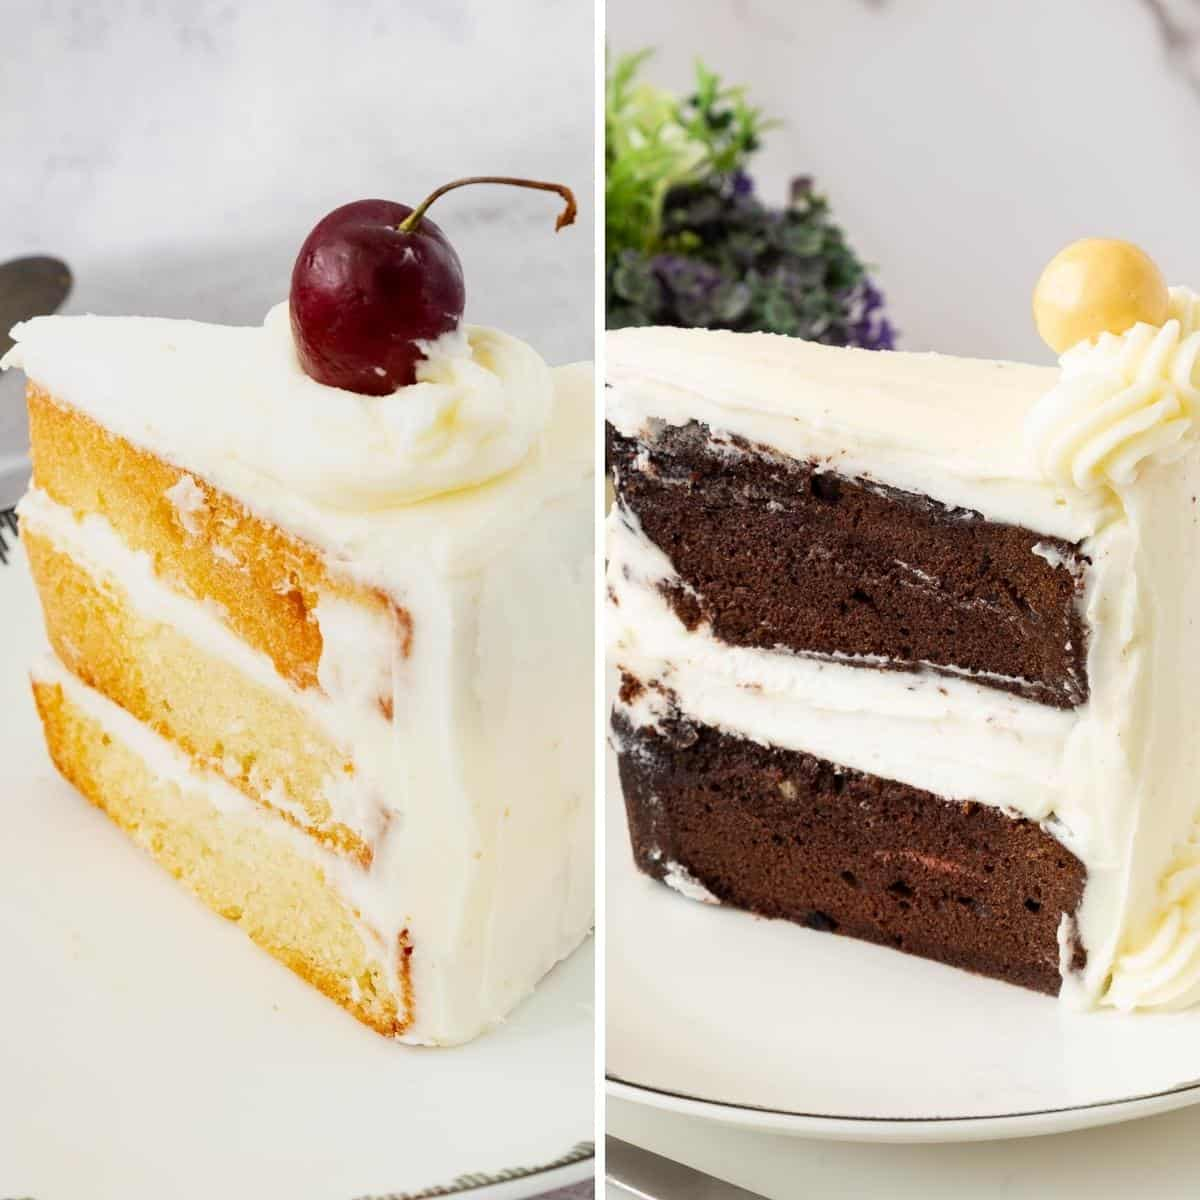 Two plates with vanilla and chocolate cakes slices.